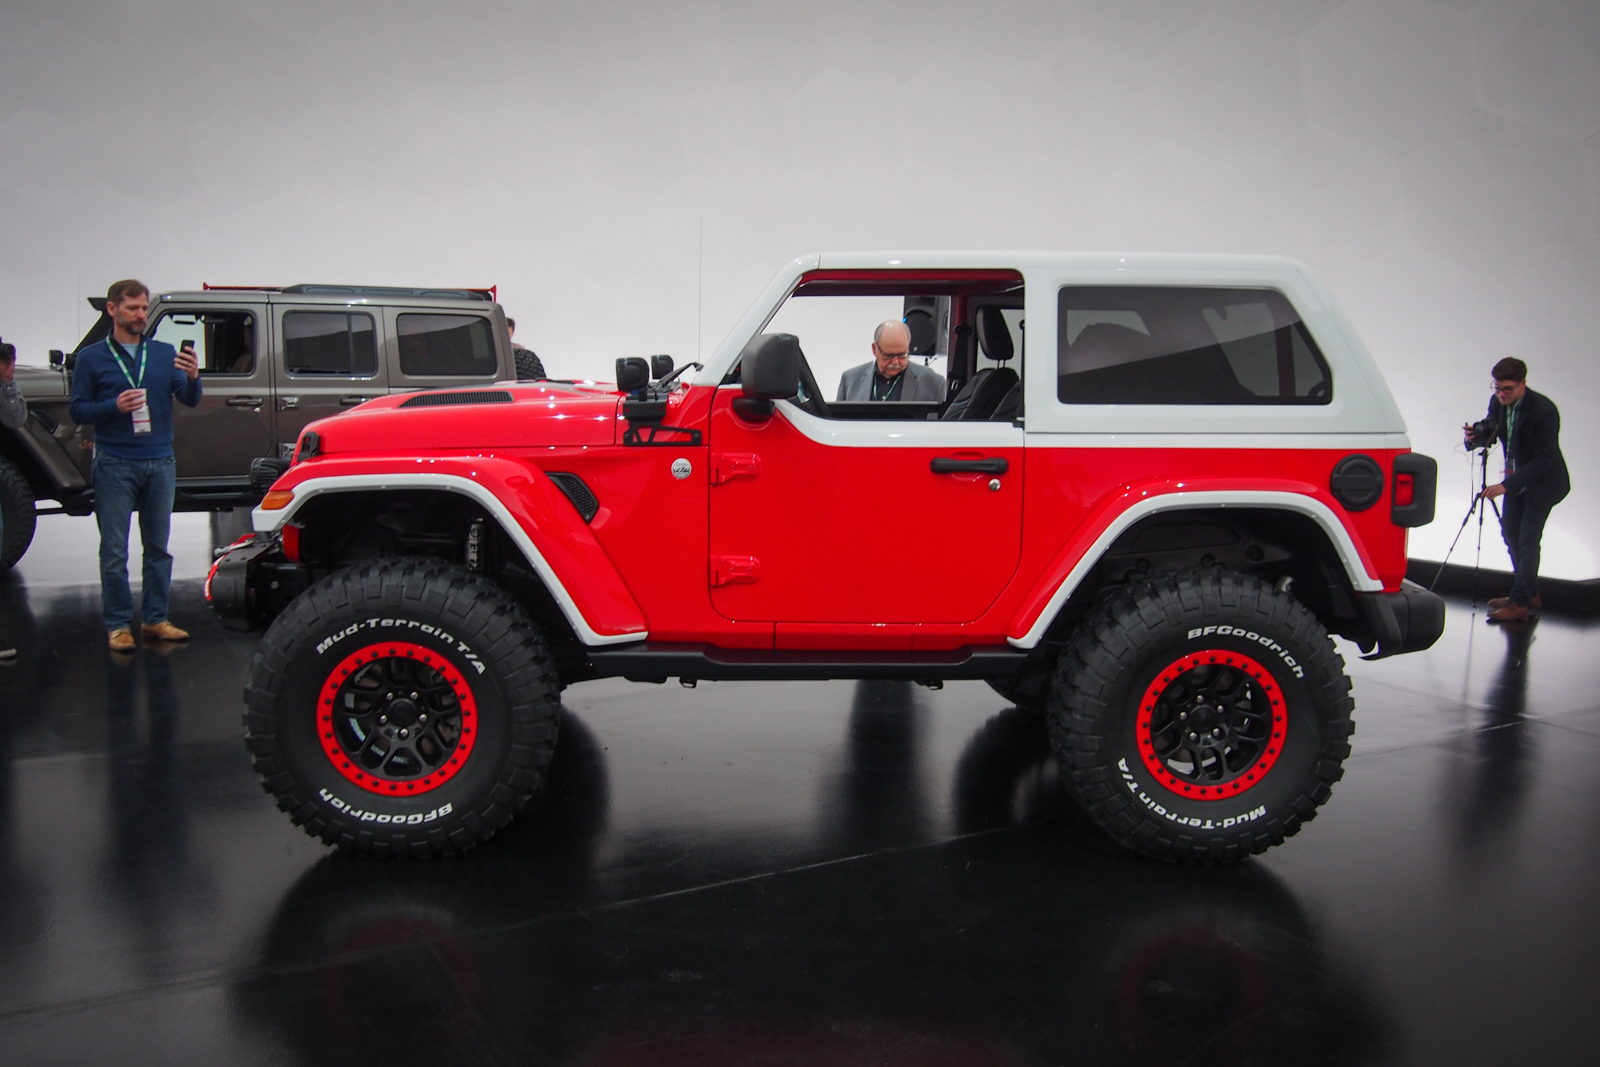 jeep shows off seven concepts for 2018 easter jeep safari news. Black Bedroom Furniture Sets. Home Design Ideas